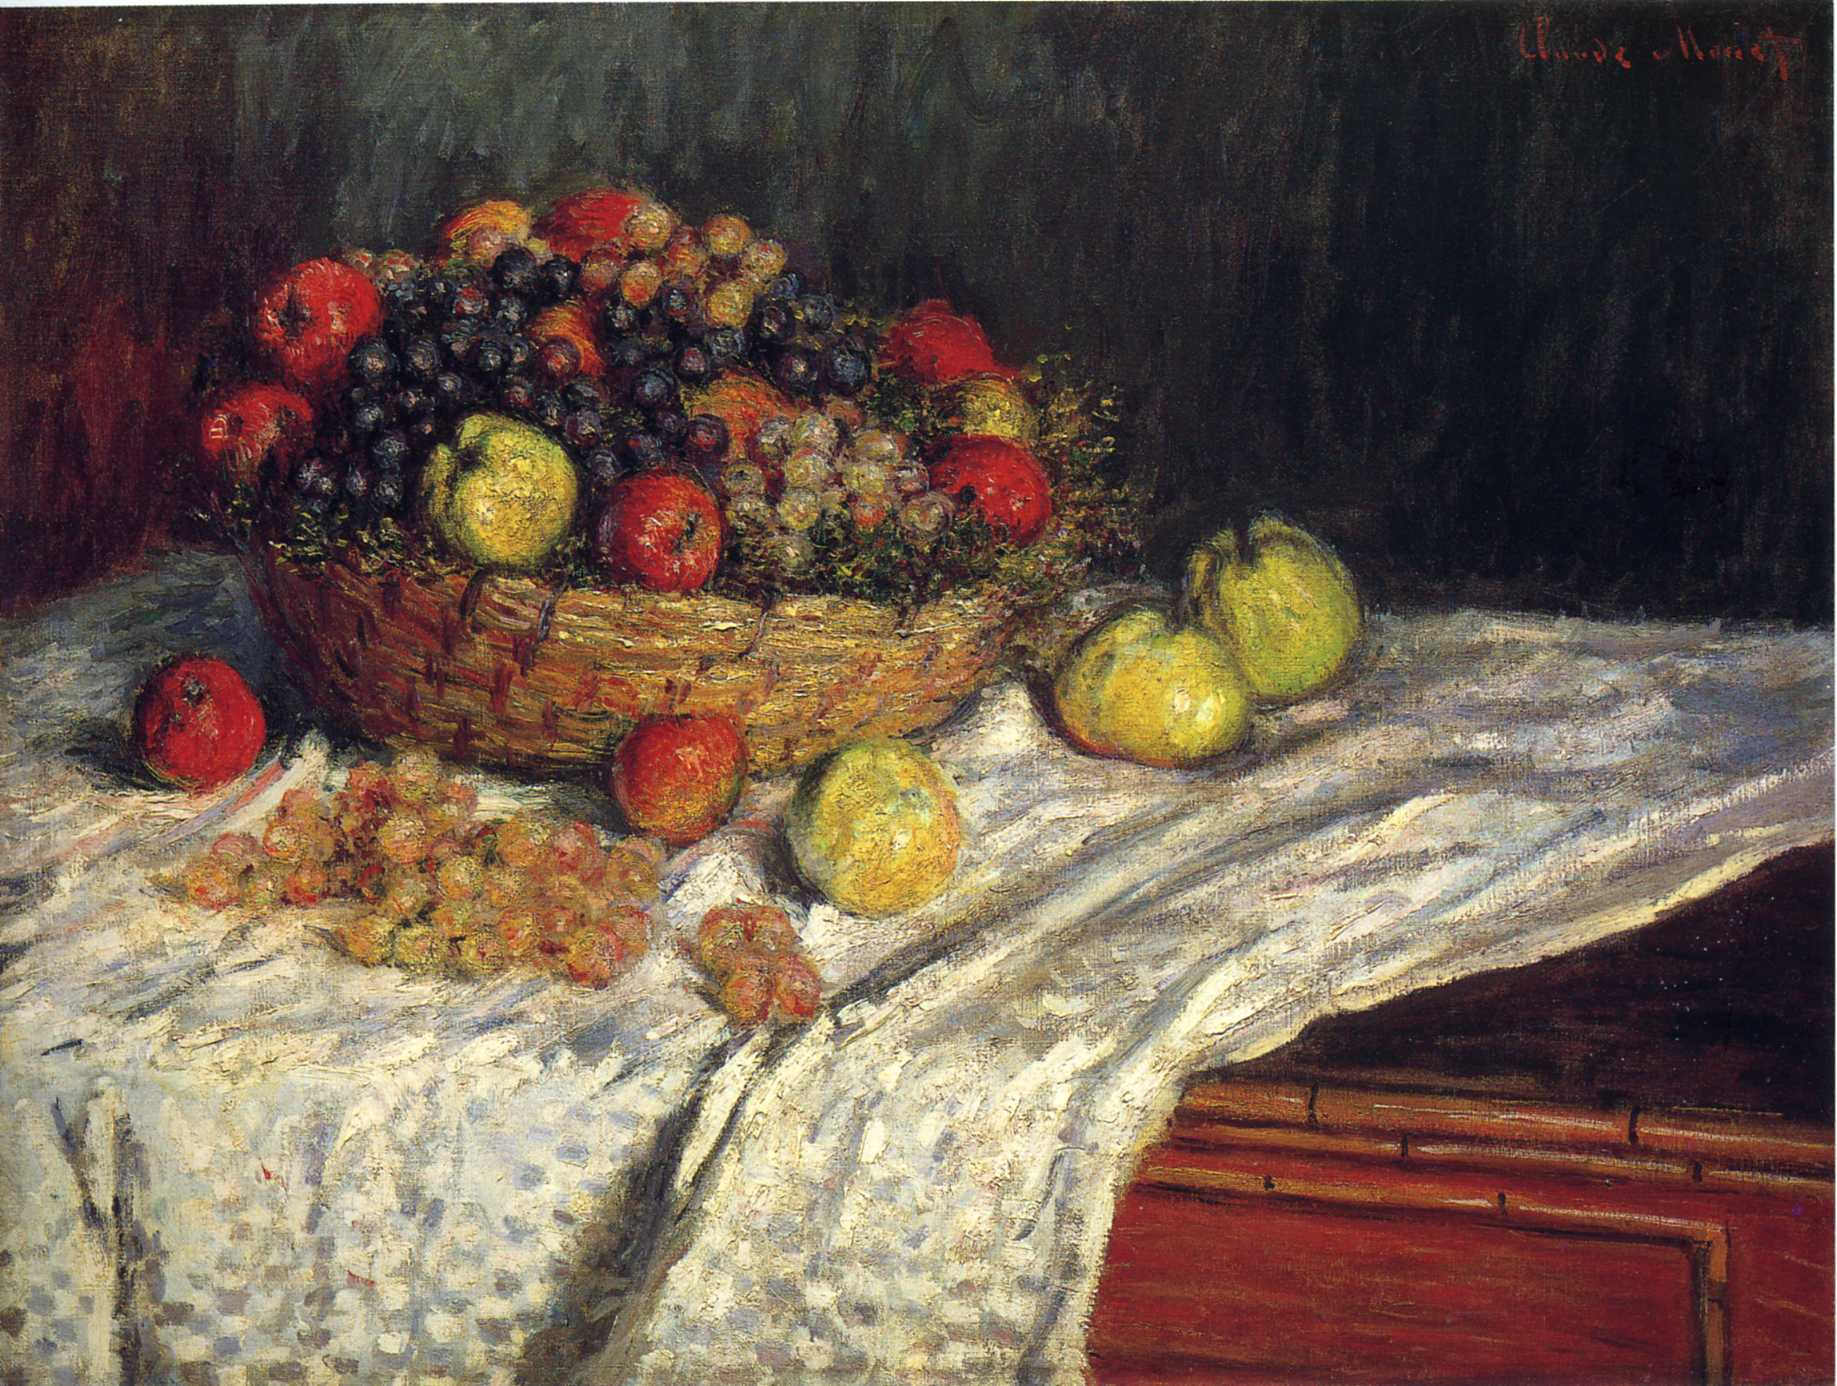 Fruit Basket with Apples and Grapes 1879